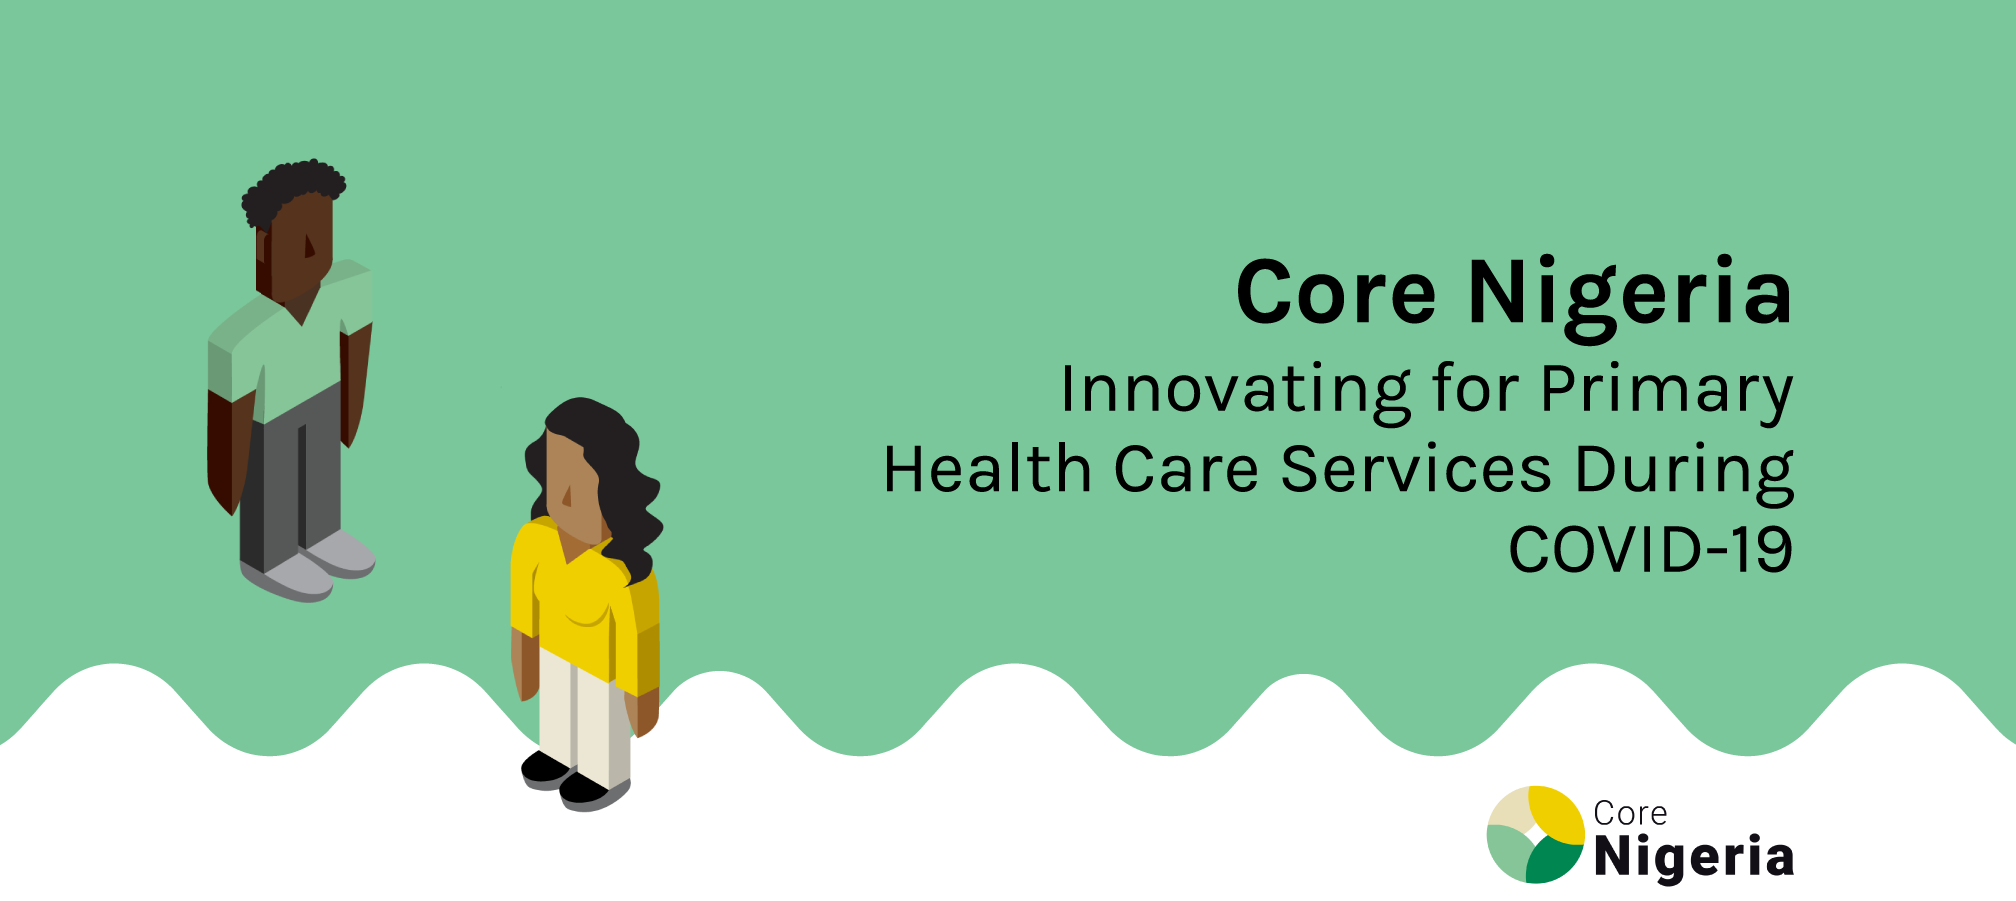 Innovating for Primary Health Care Services During COVID-19